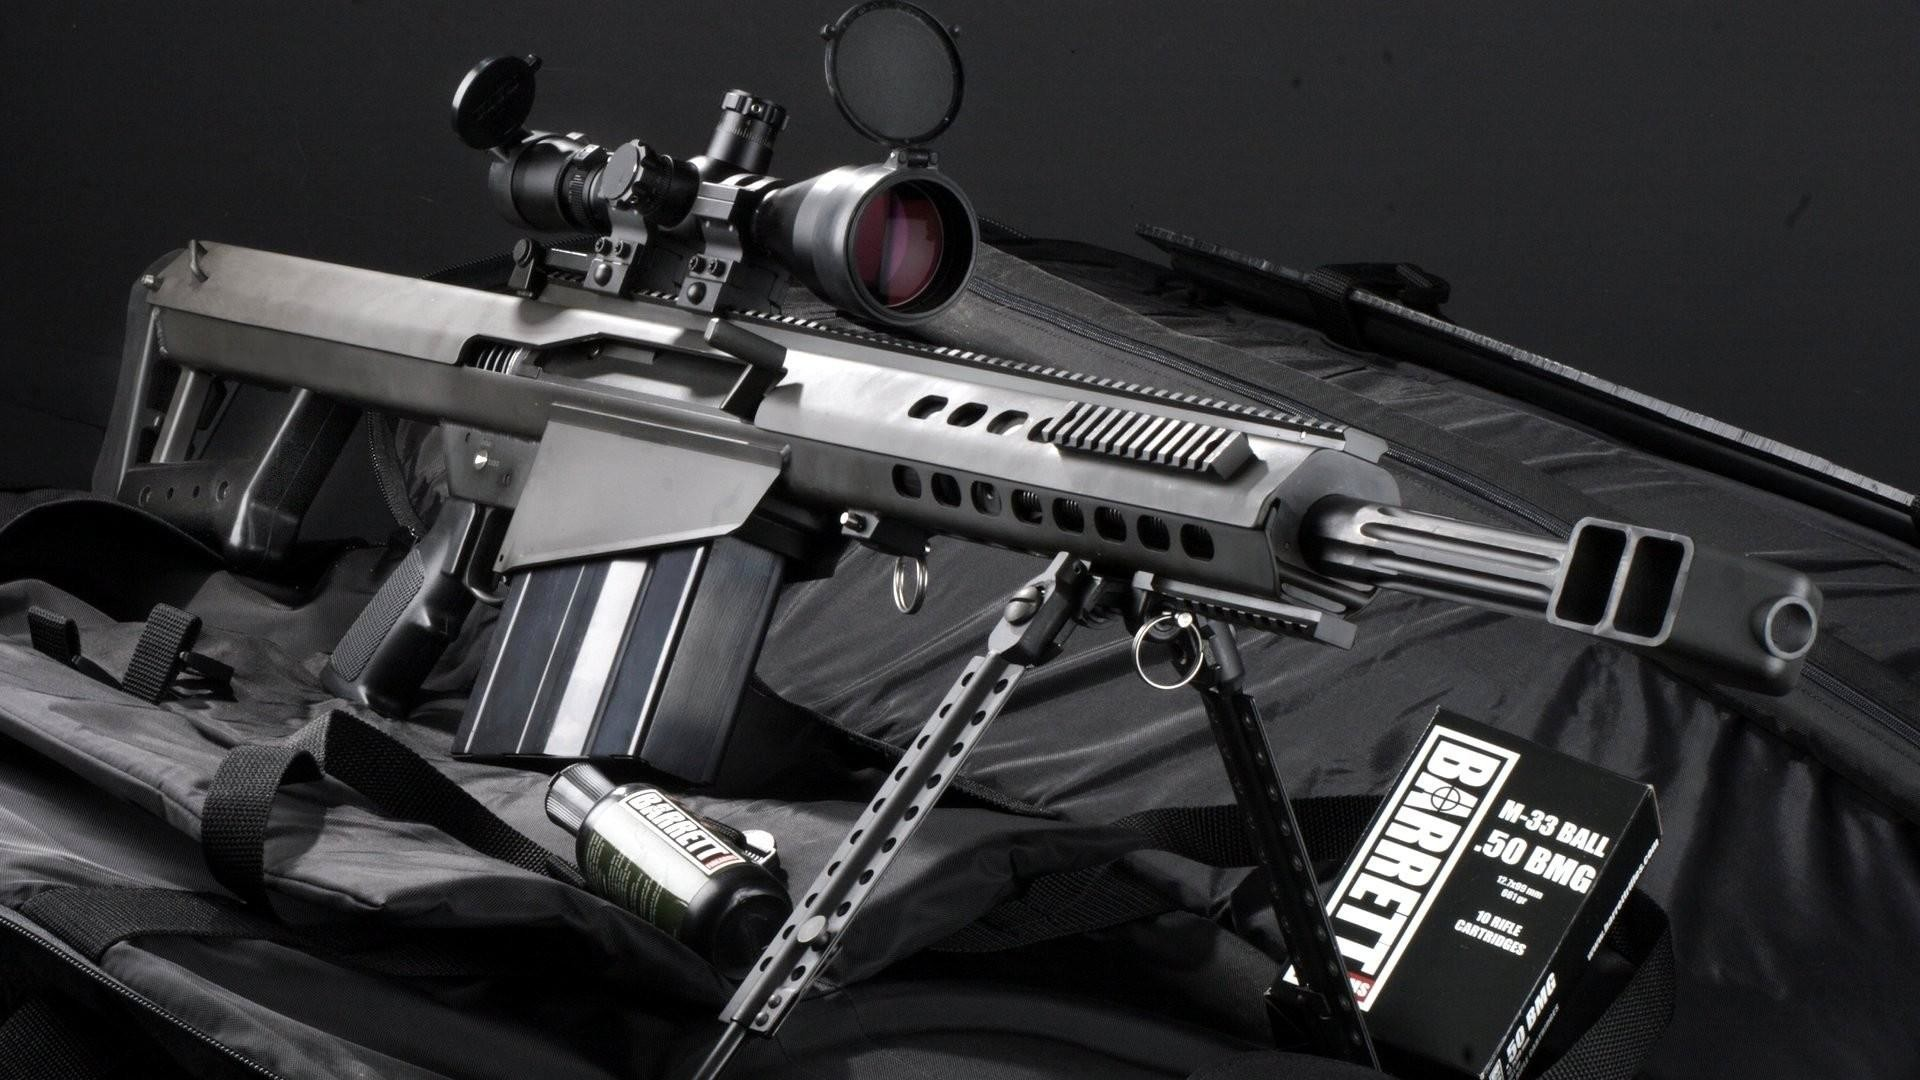 1920x1080 Automatic Weapons Style Military Assault Rifles Guns High Resolution  Pictures wallpaper thumb